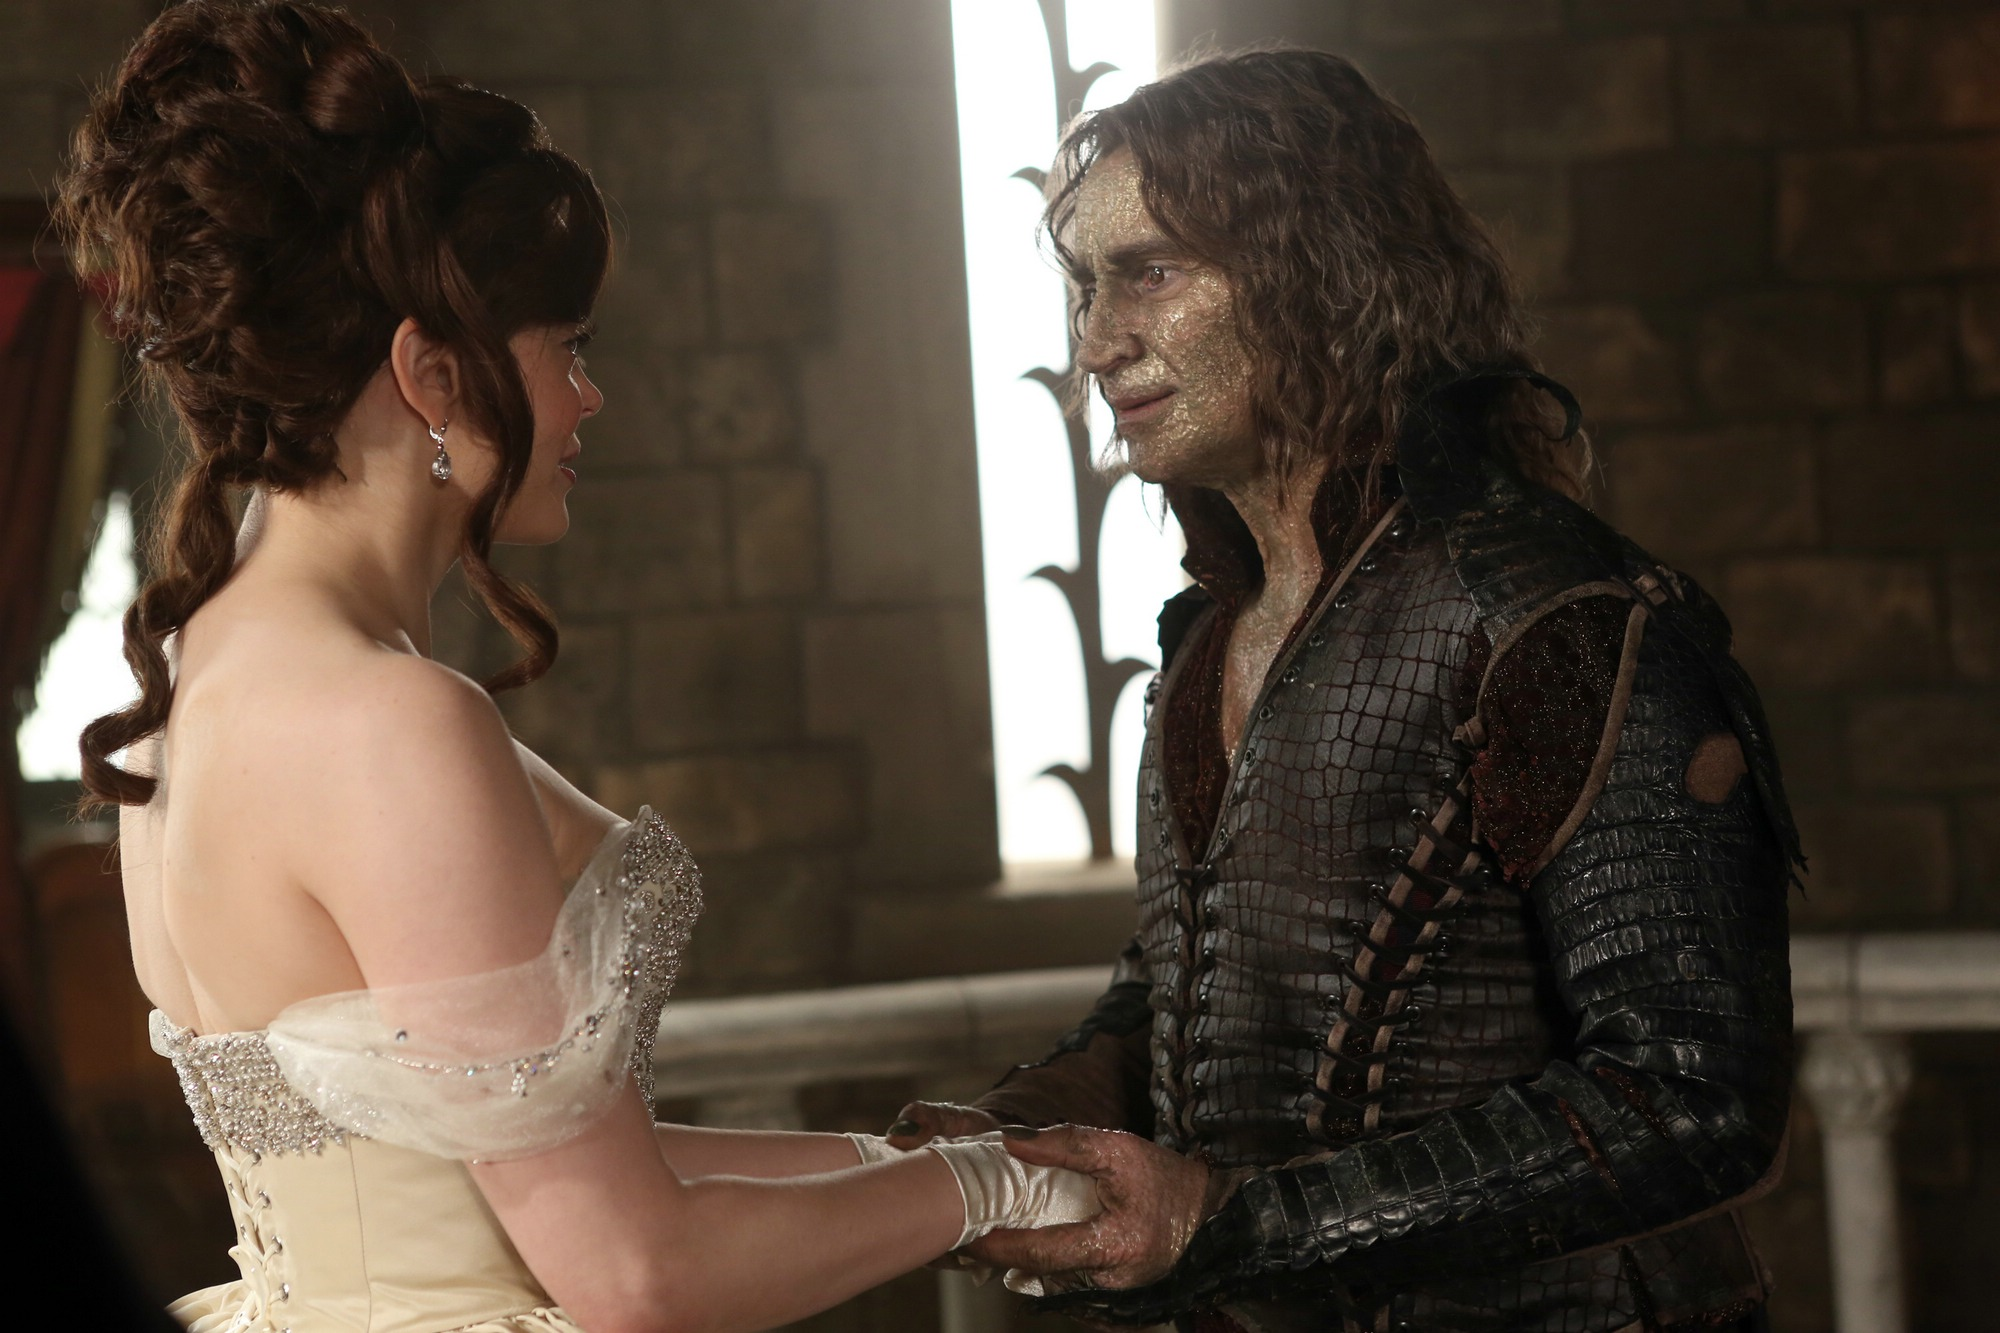 marriage and rumpelstiltskin Get youtube without the ads working no thanks 1 month free find out why close once upon a time 3x20 kansas rumpelstiltskin proposes to belle oncer forever loading.